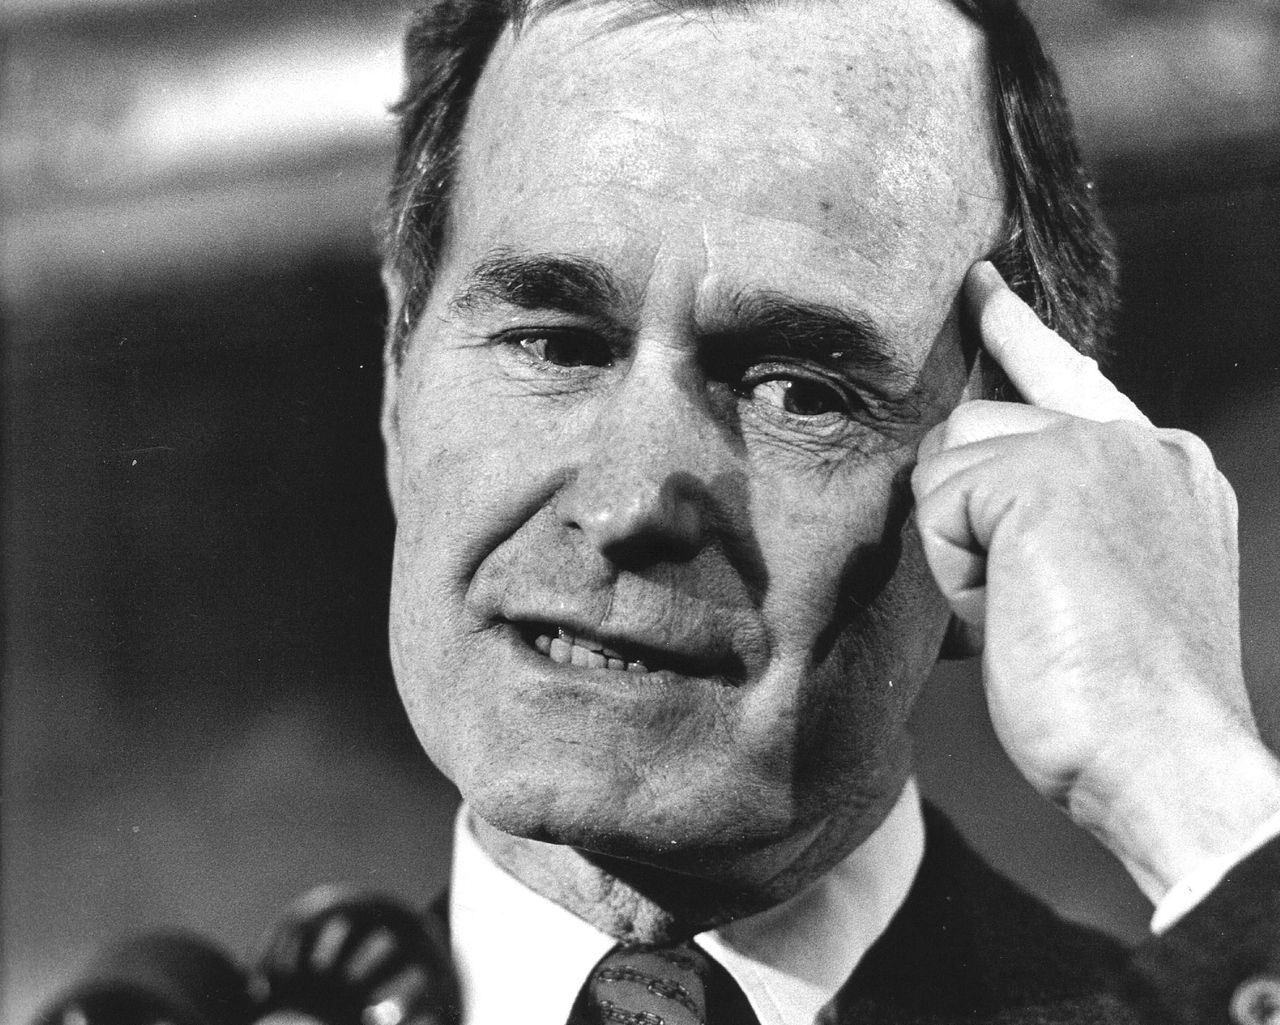 Portret van George H.W. Bush in 1986.